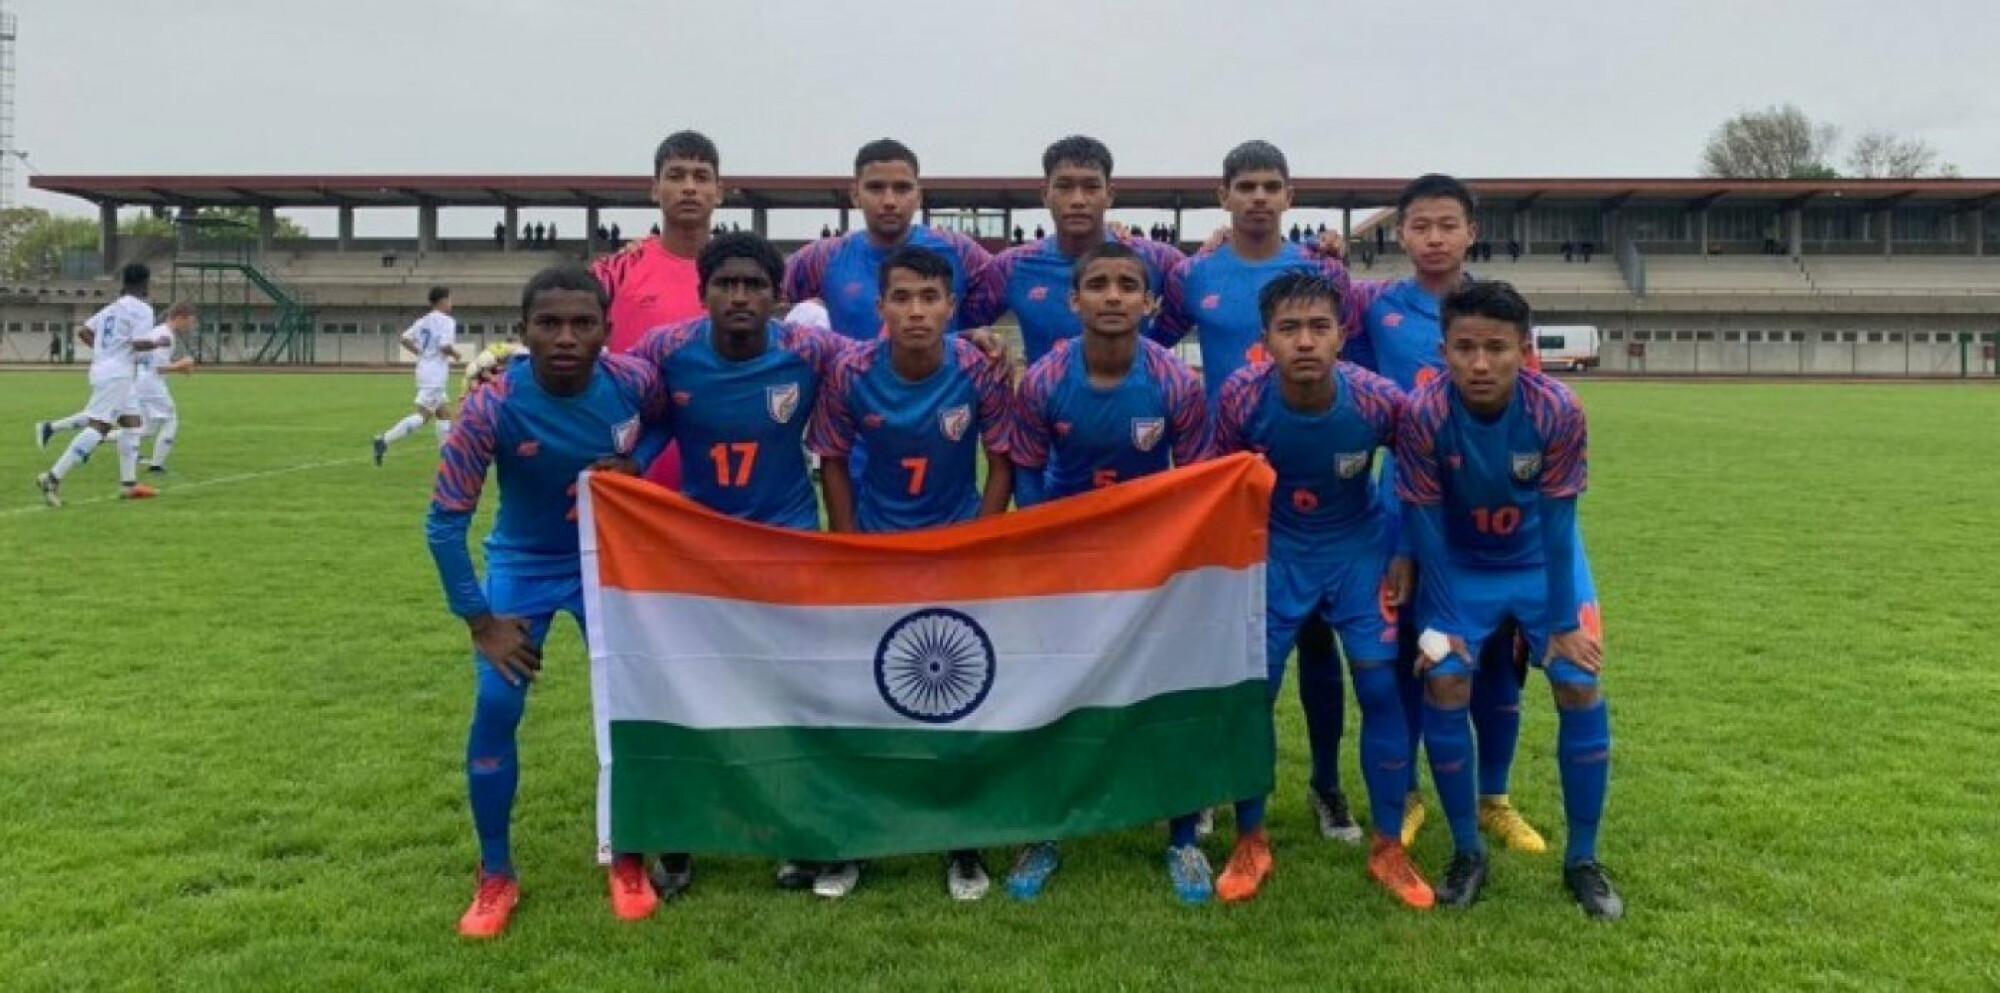 MU-15 Tournament: India defeat Qatar